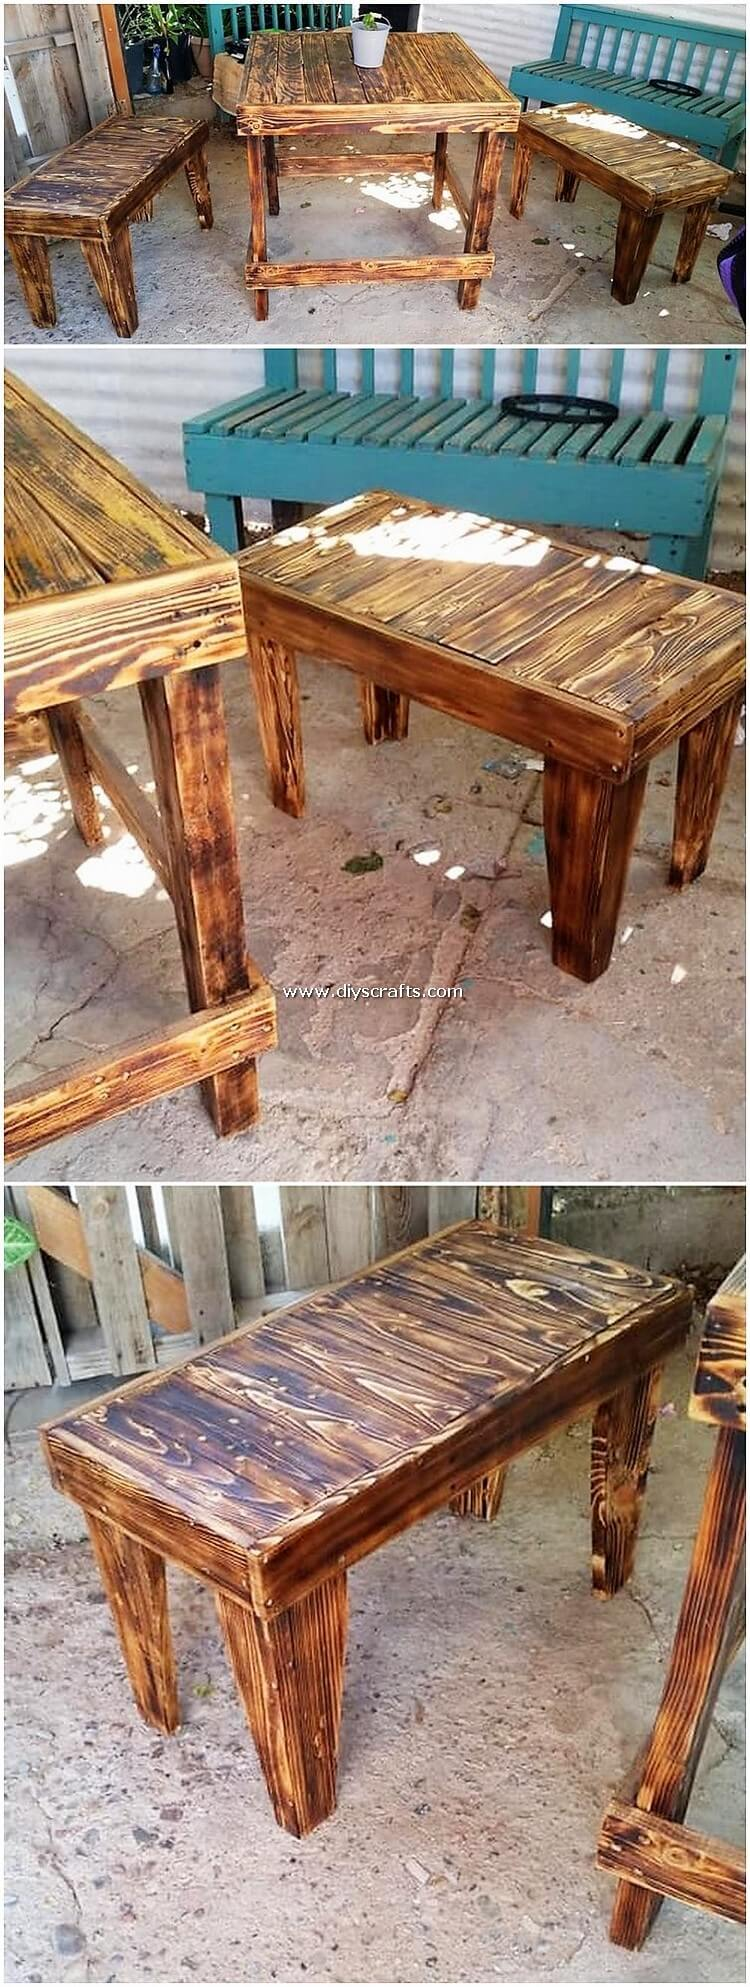 Pallet-Wood-Table-and-Benches